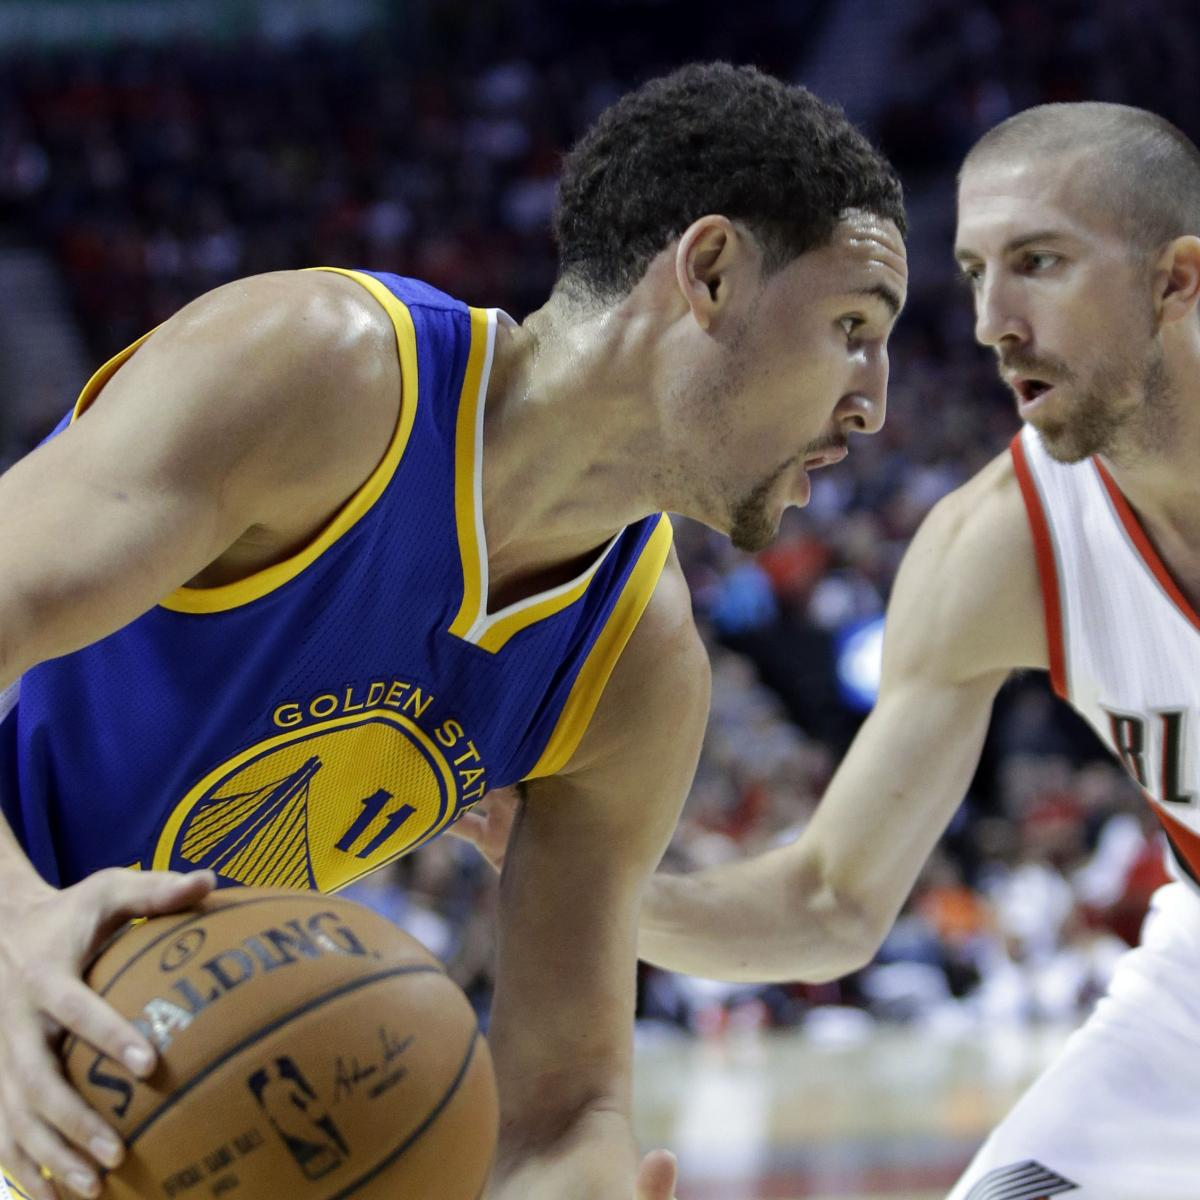 Portland Blazers Schedule: Golden State Warriors Vs Portland Trail Blazers 11/2/14